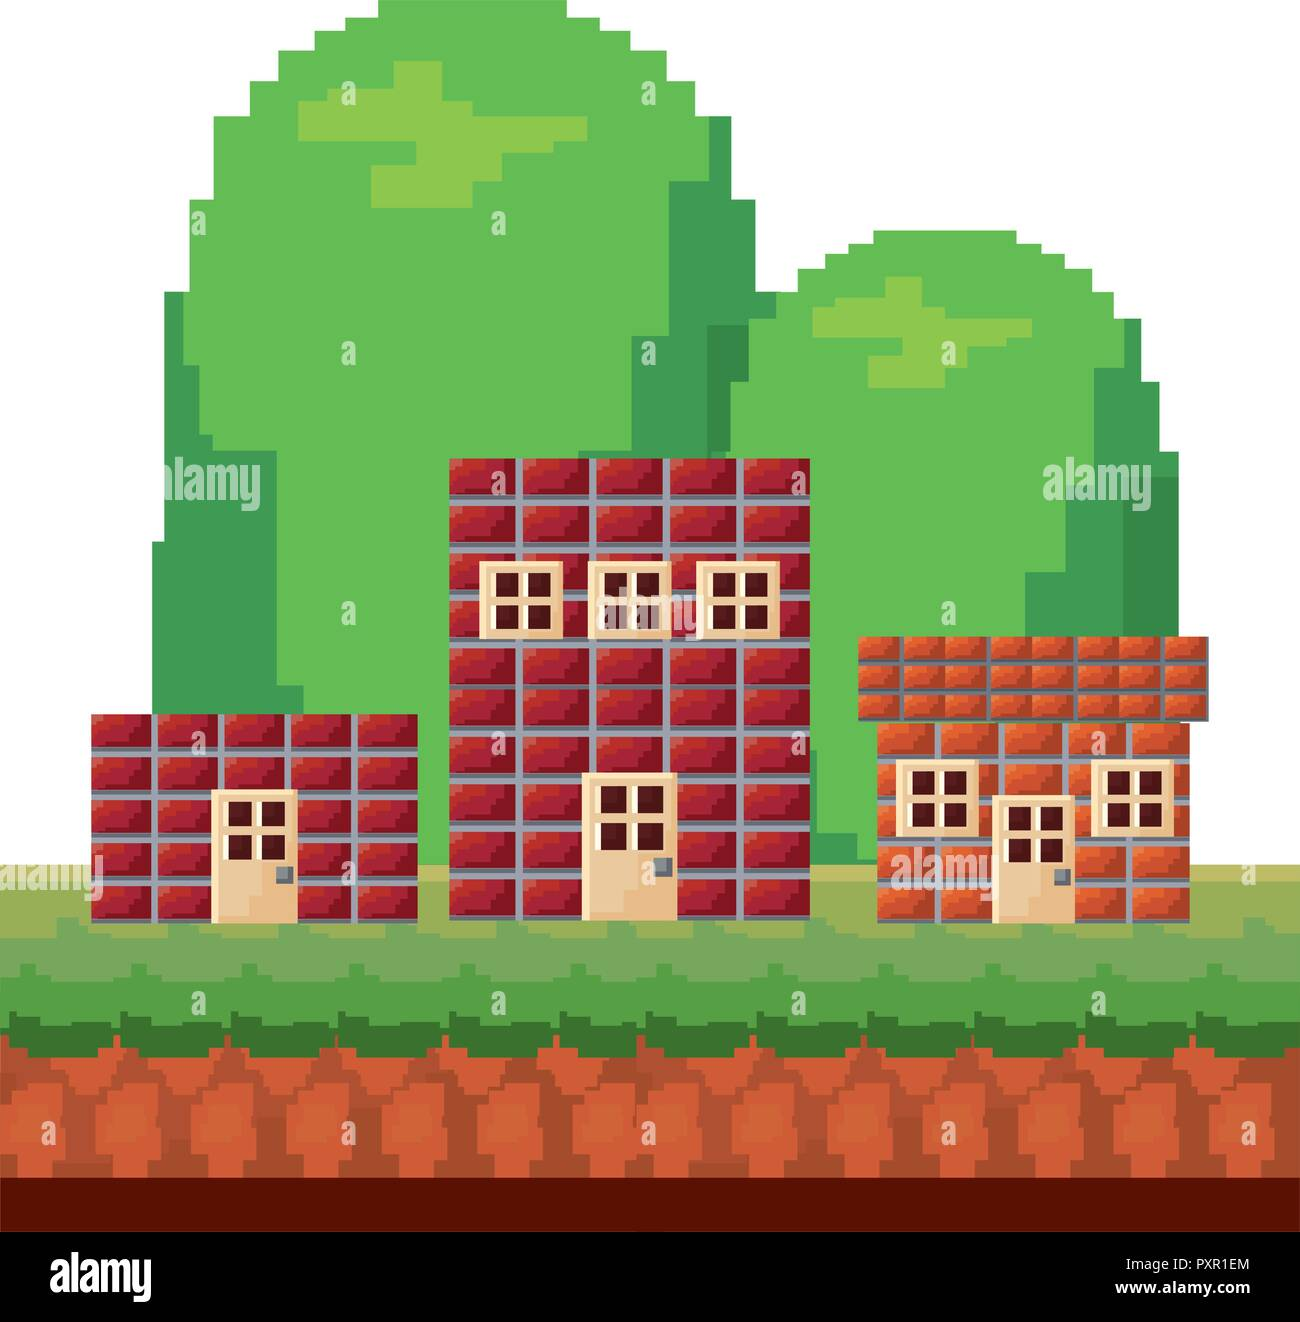 houses brick level video game vector illustration - Stock Vector